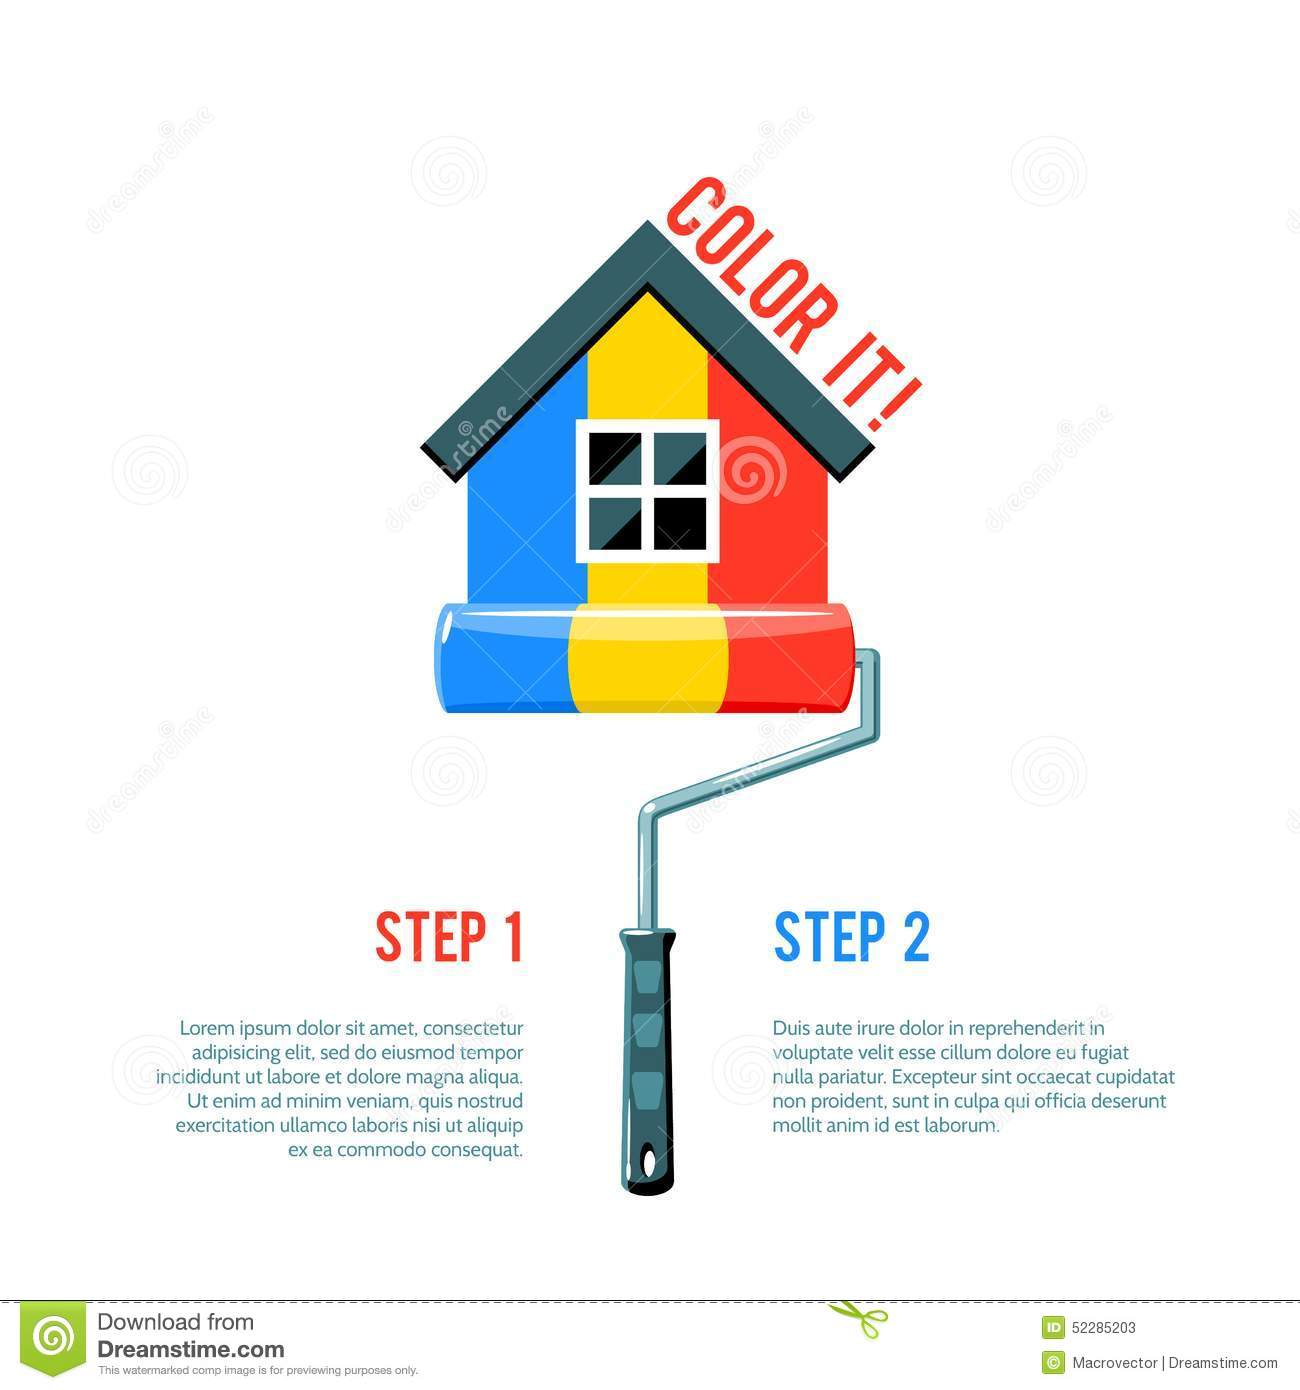 Paint House paint house icon stock vector - image: 52285203